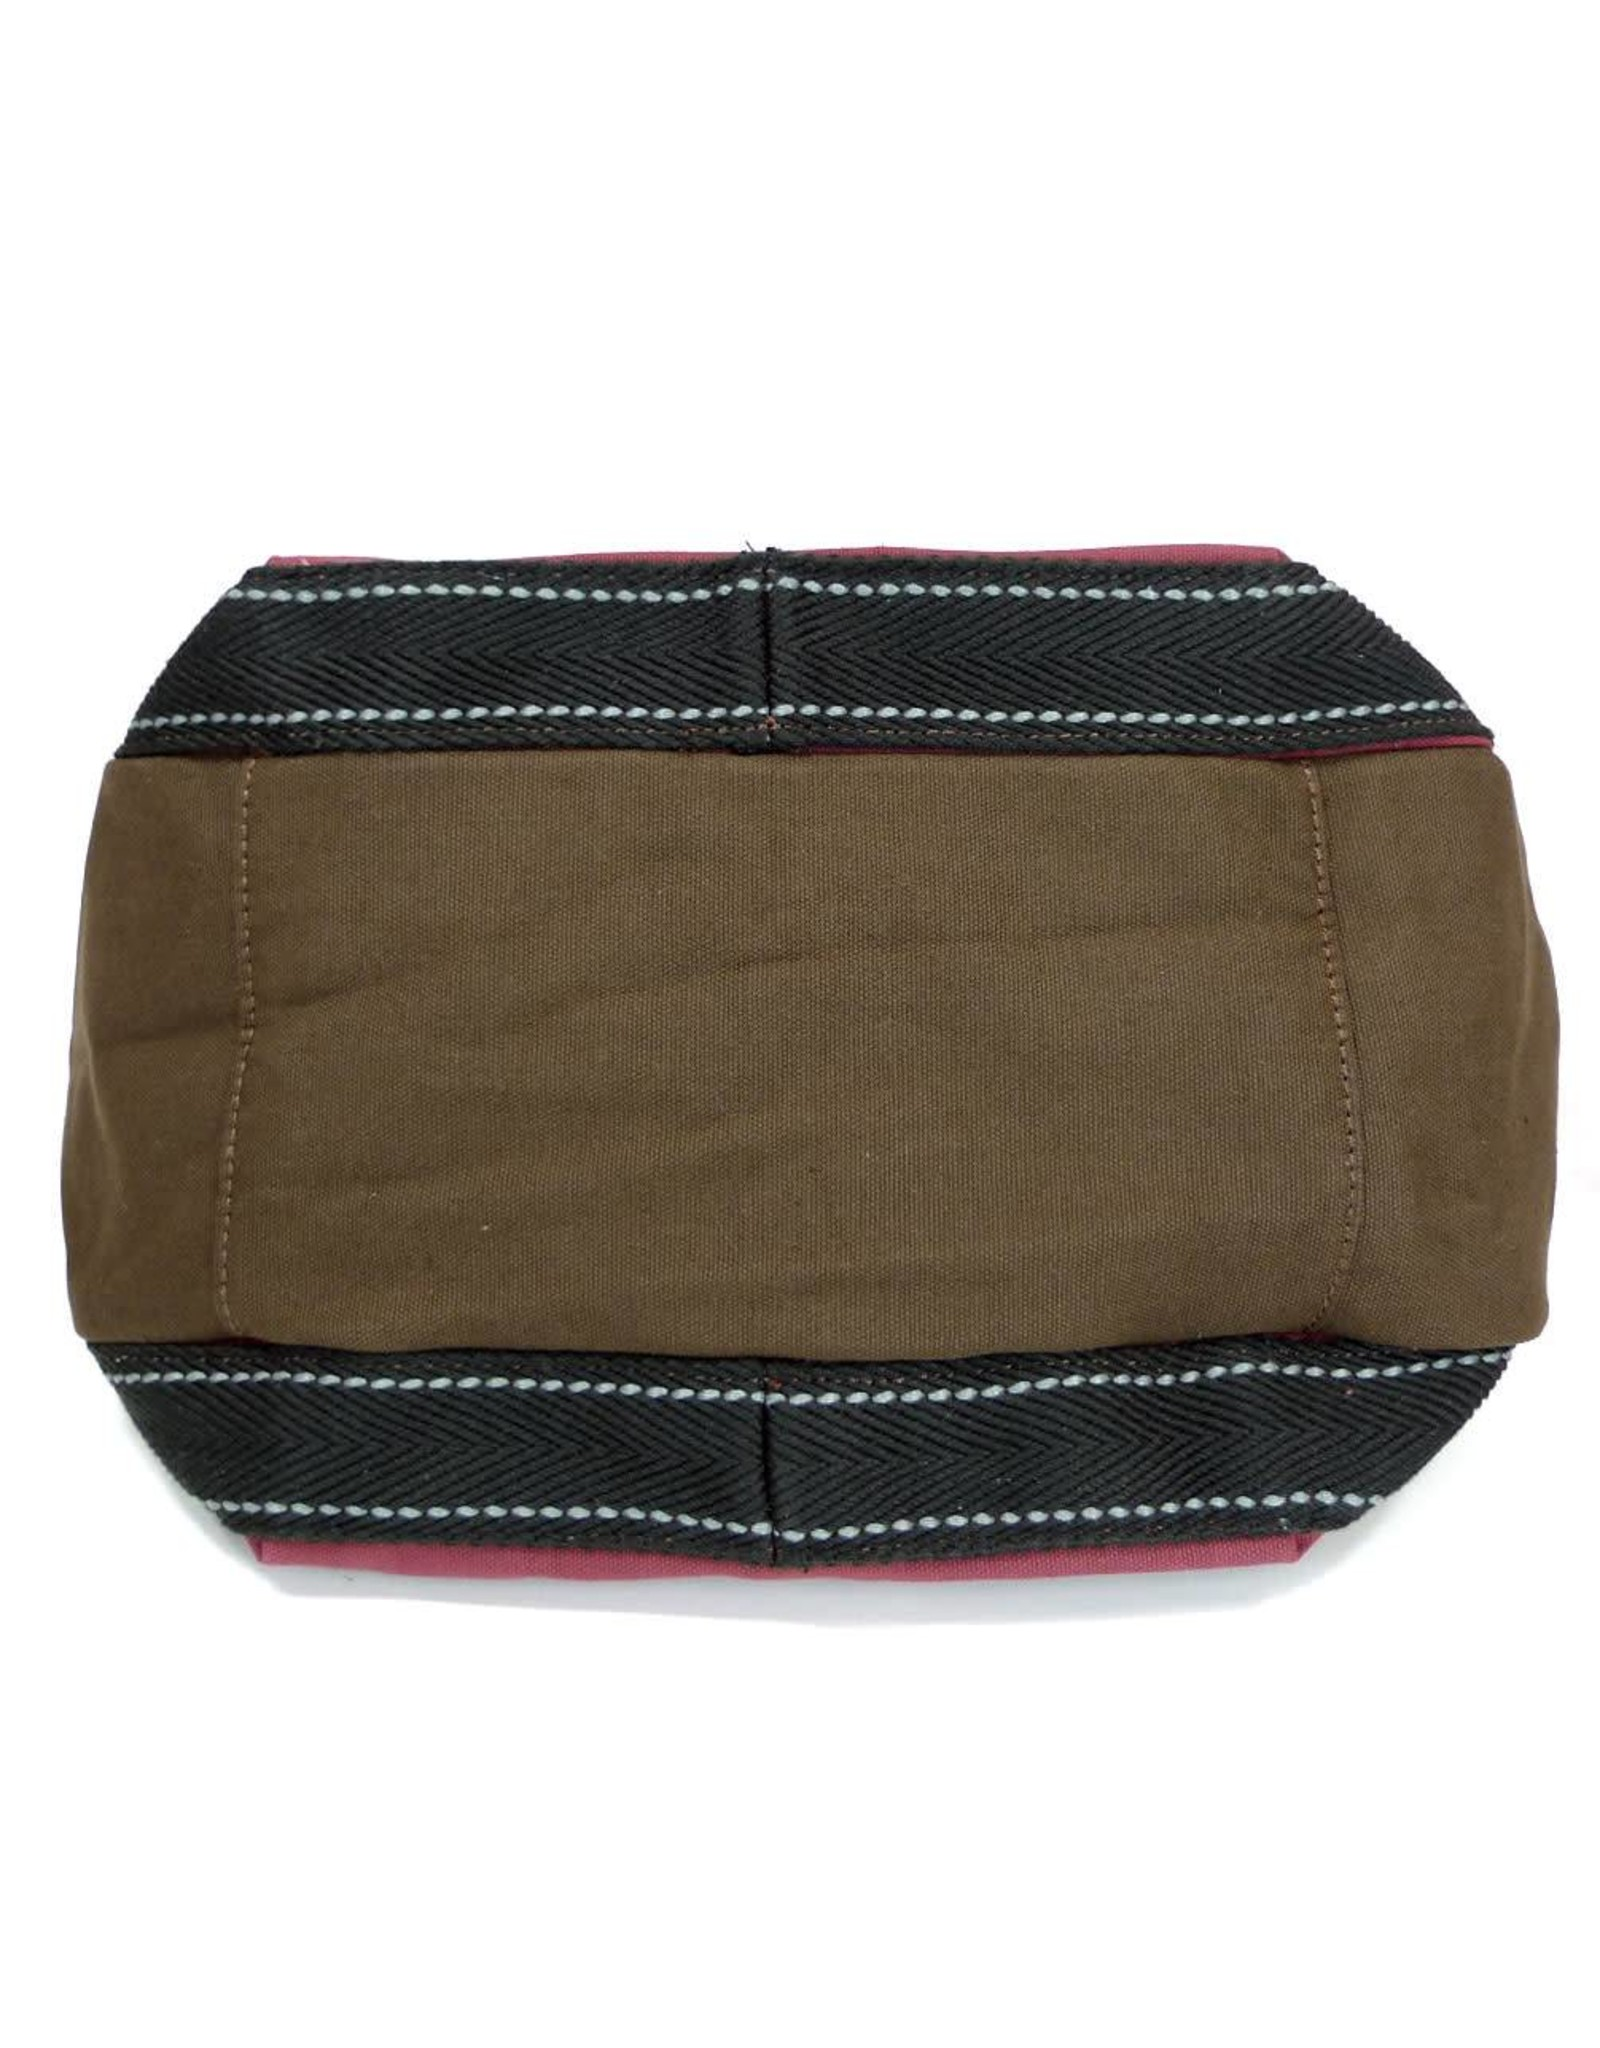 Chala Carryall Zip Tote Wiener Dog Scooter